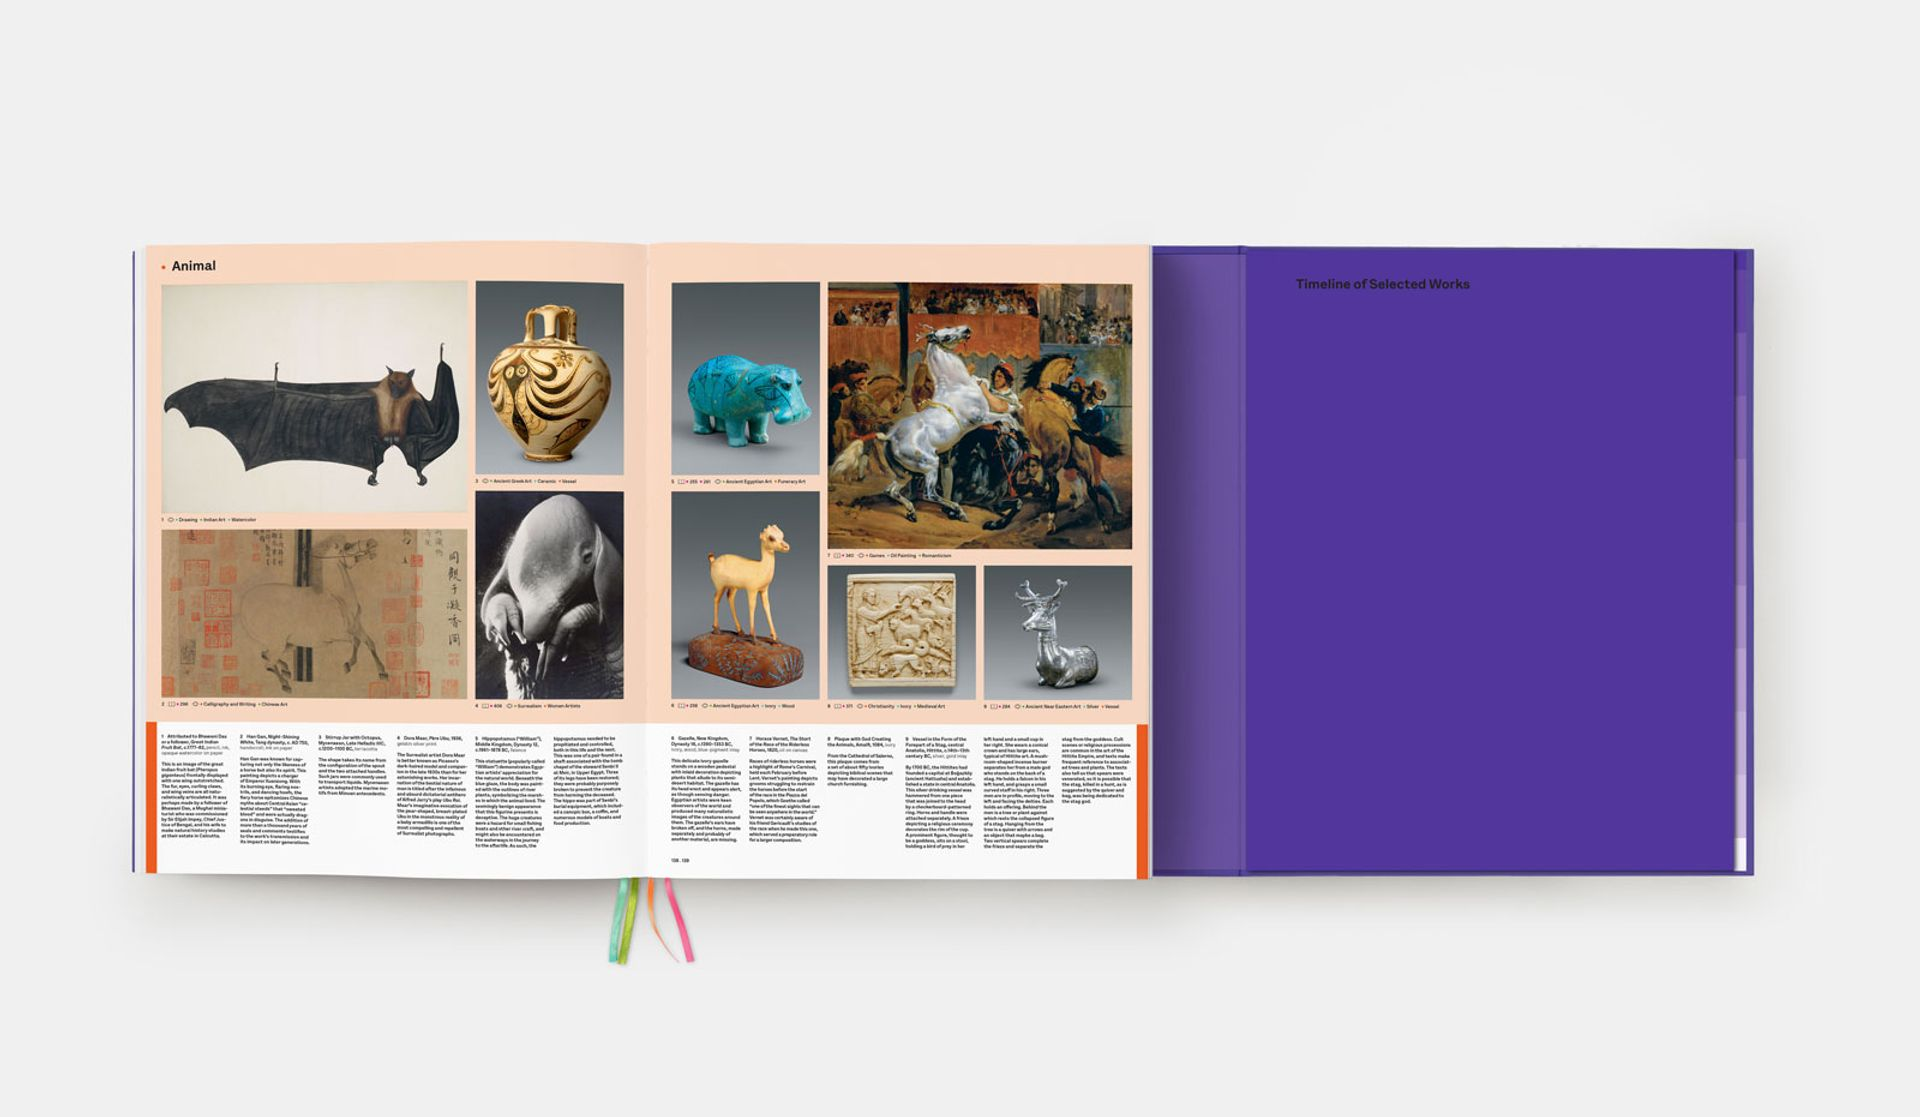 A spread from the Art= book showing animals